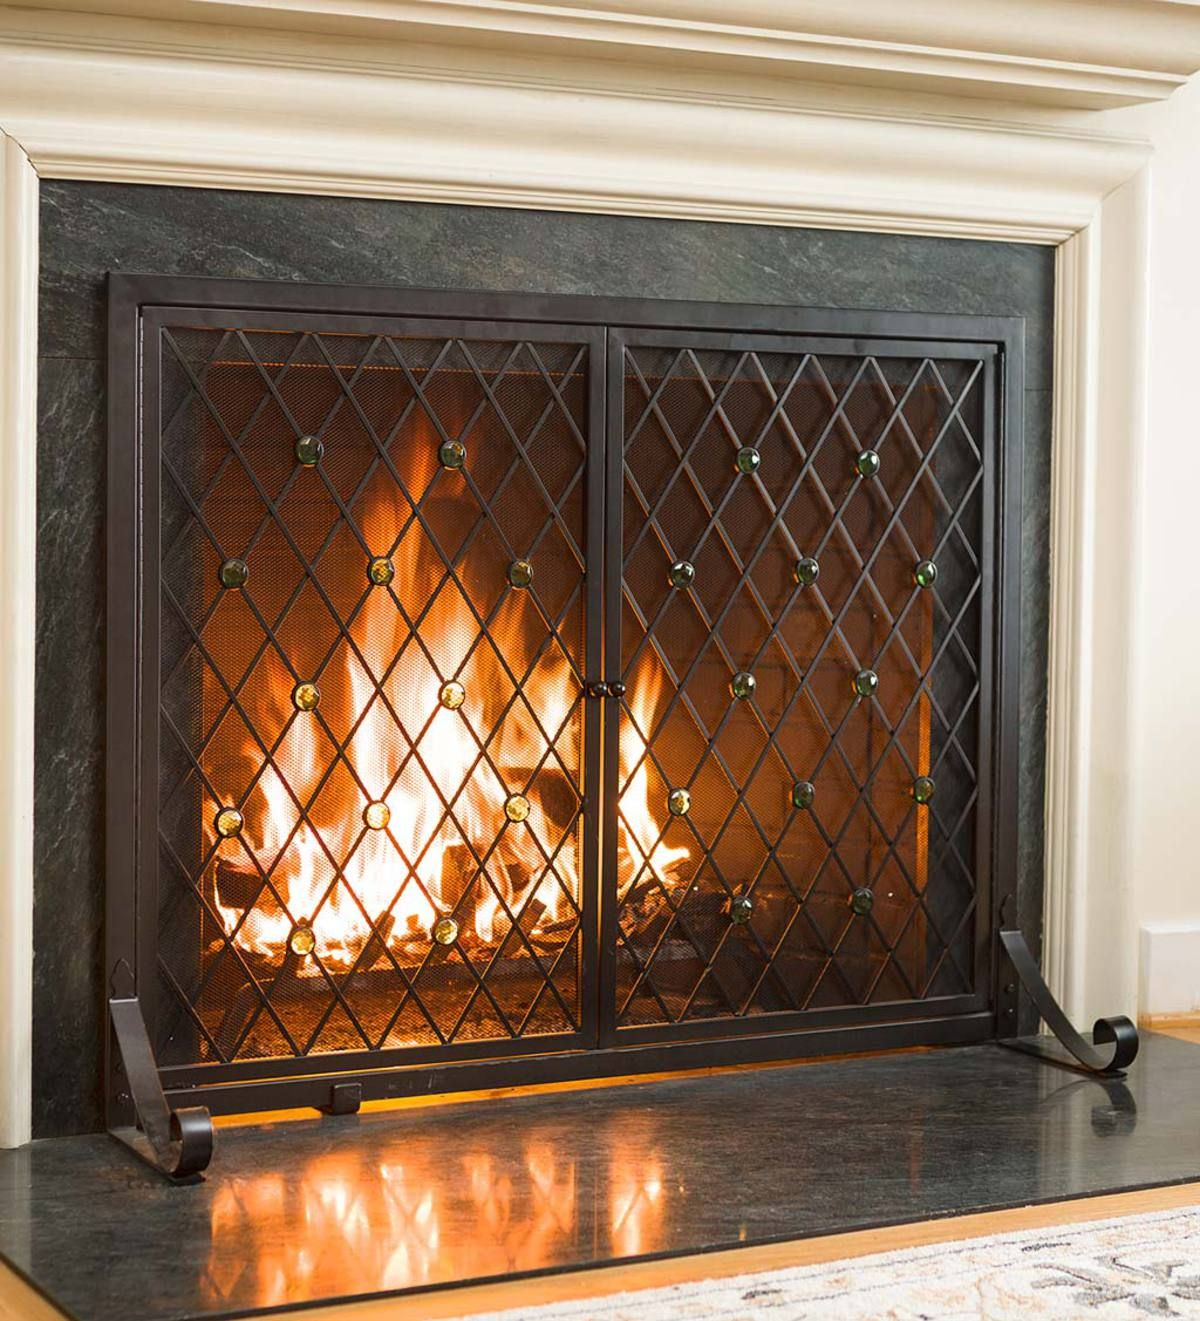 Fireside Elegance And Functionality Come Together In This Stunning Jeweled Fireplace Scree Fireplace Screen Fireplace Screens With Doors Glass Fireplace Screen